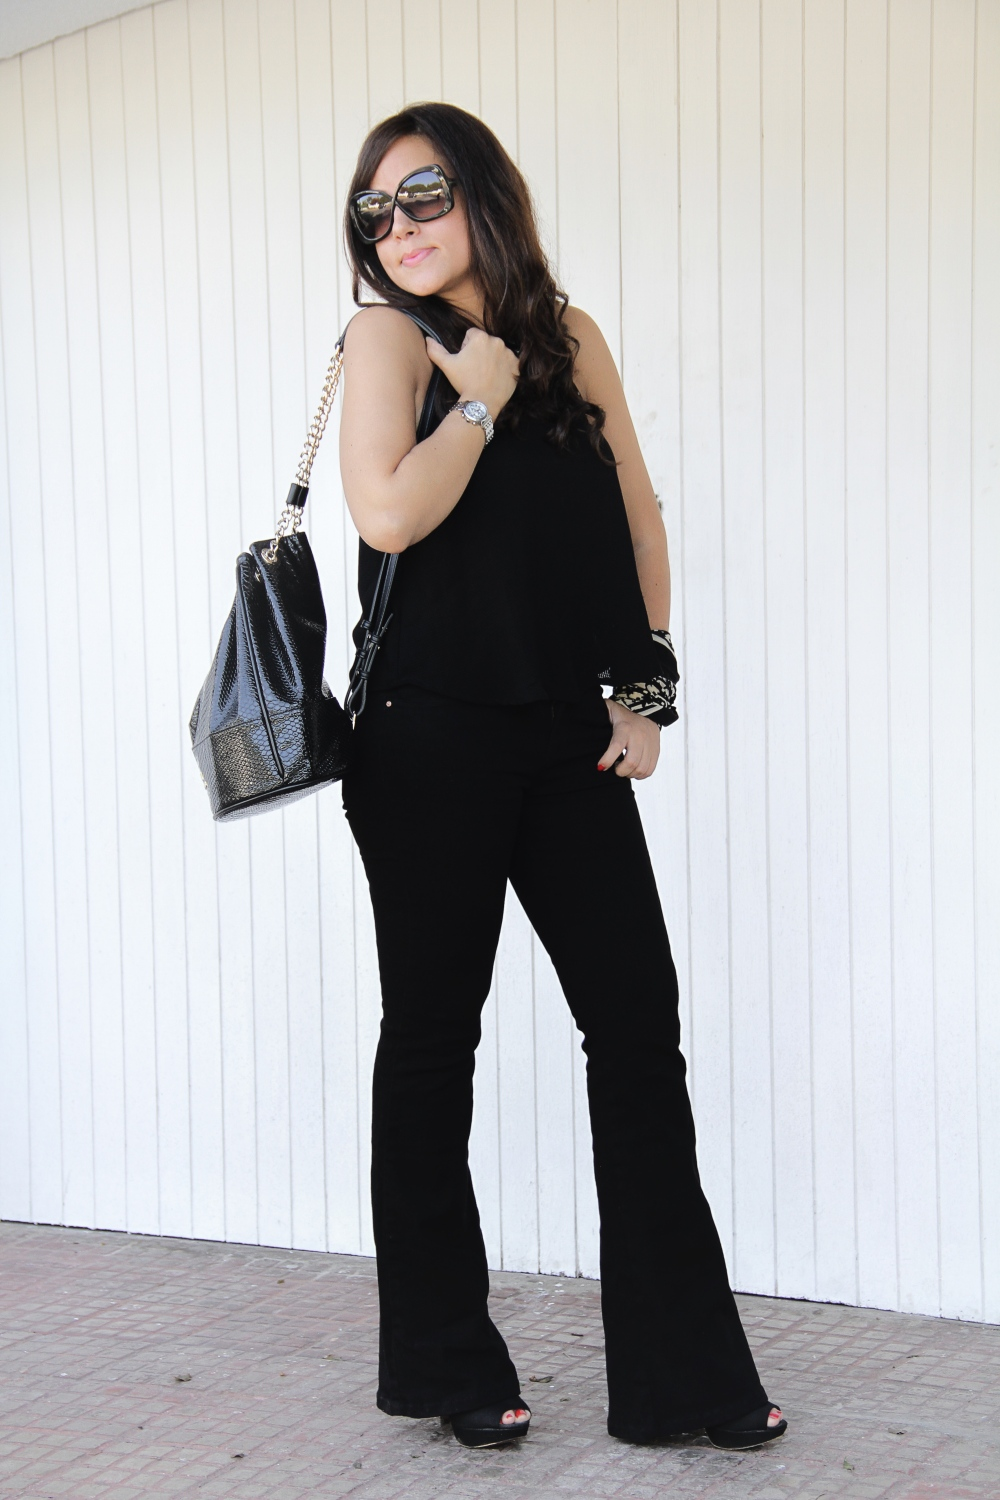 Pantalon-flare-je-peux?-blog-mode-chiccarpediem-77